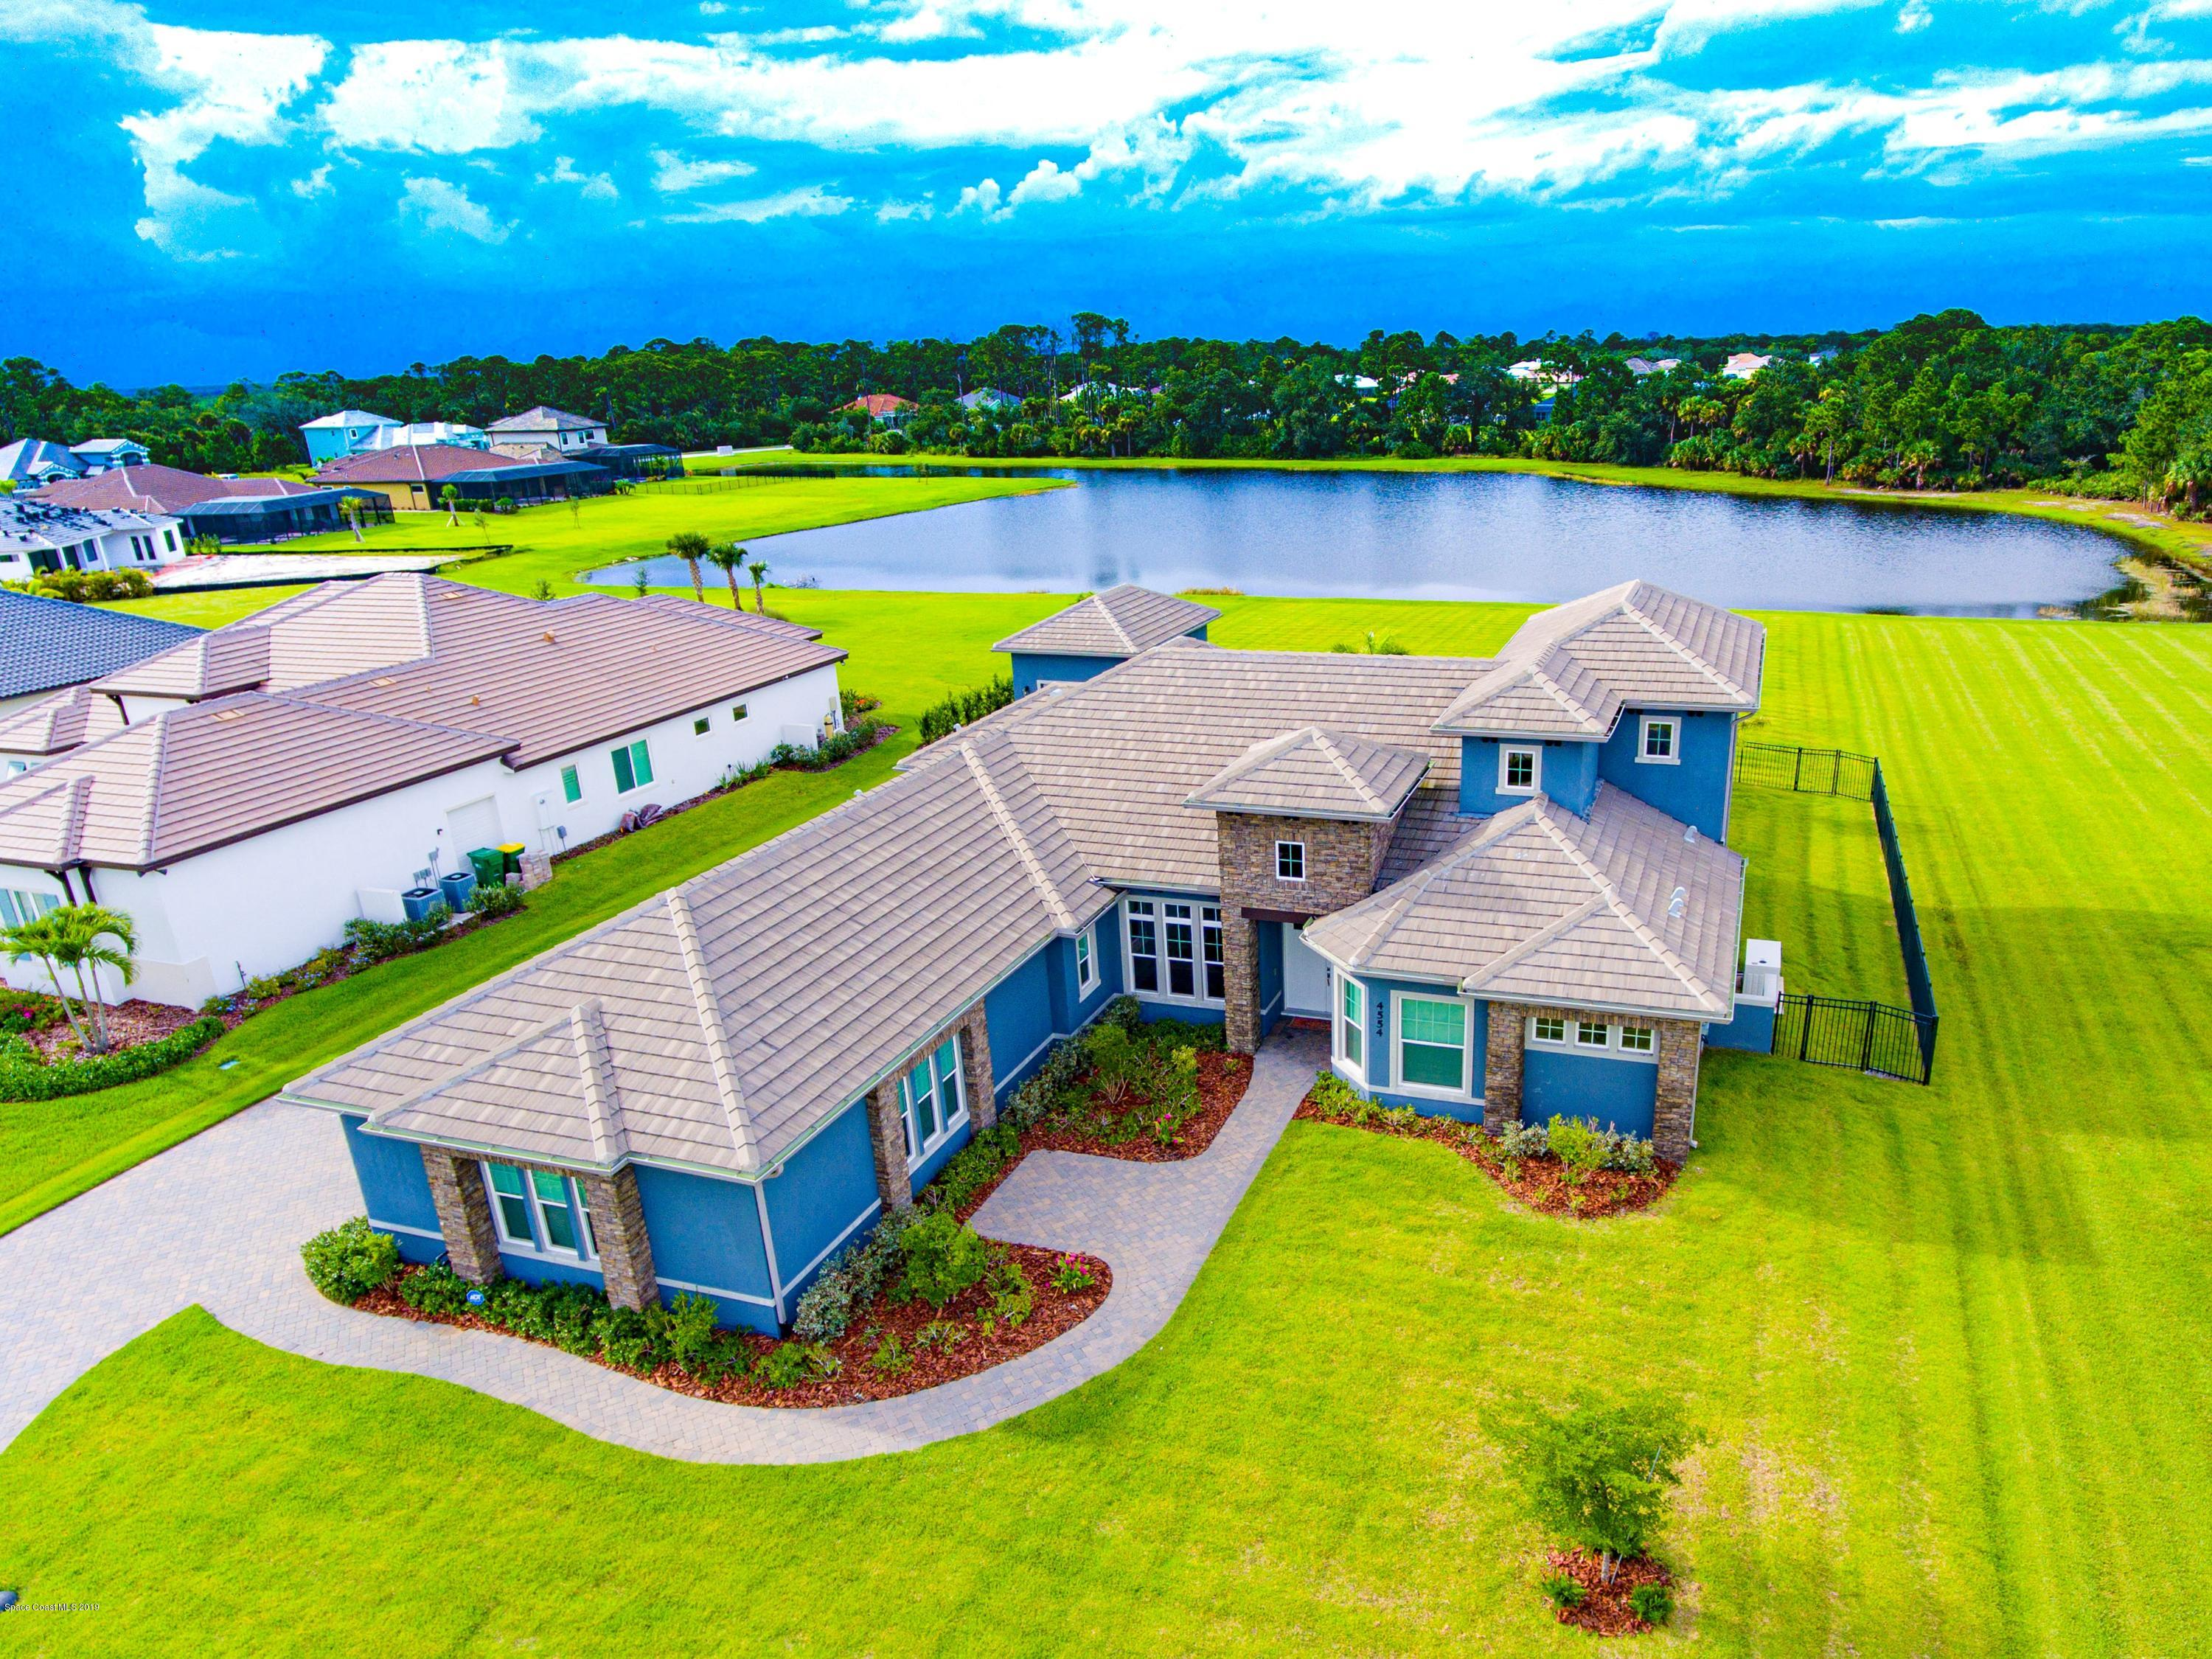 Single Family Homes for Sale at 4554 Preservation Melbourne, Florida 32934 United States